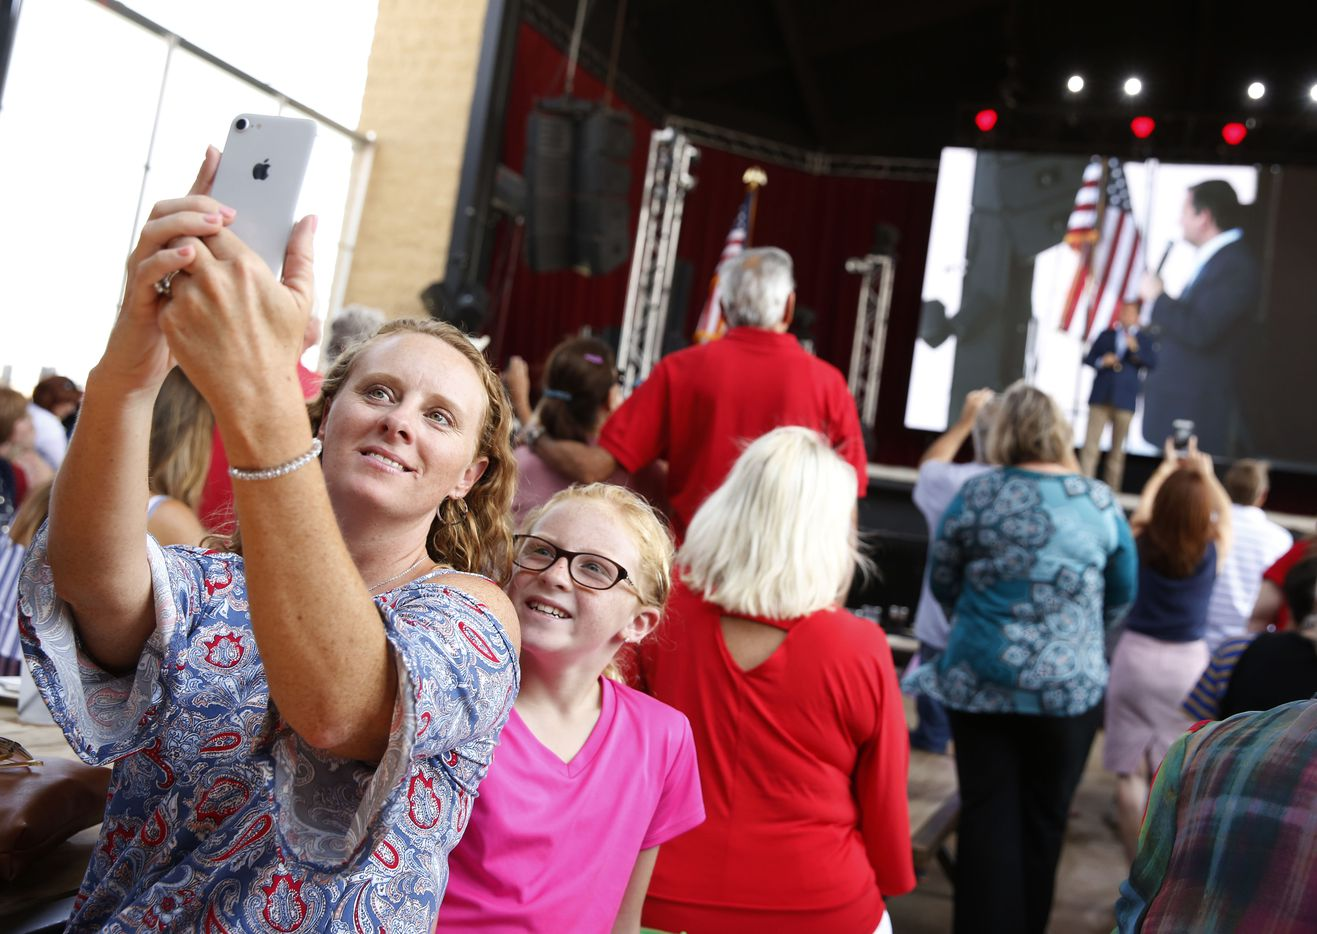 Jennifer Poshadlo takes a photo with her daughter Katelyn Poshadlo, 10, as Senator Ted Cruz gives a speech at Lava Cantina in The Colony, Texas on Aug. 27, 2018.